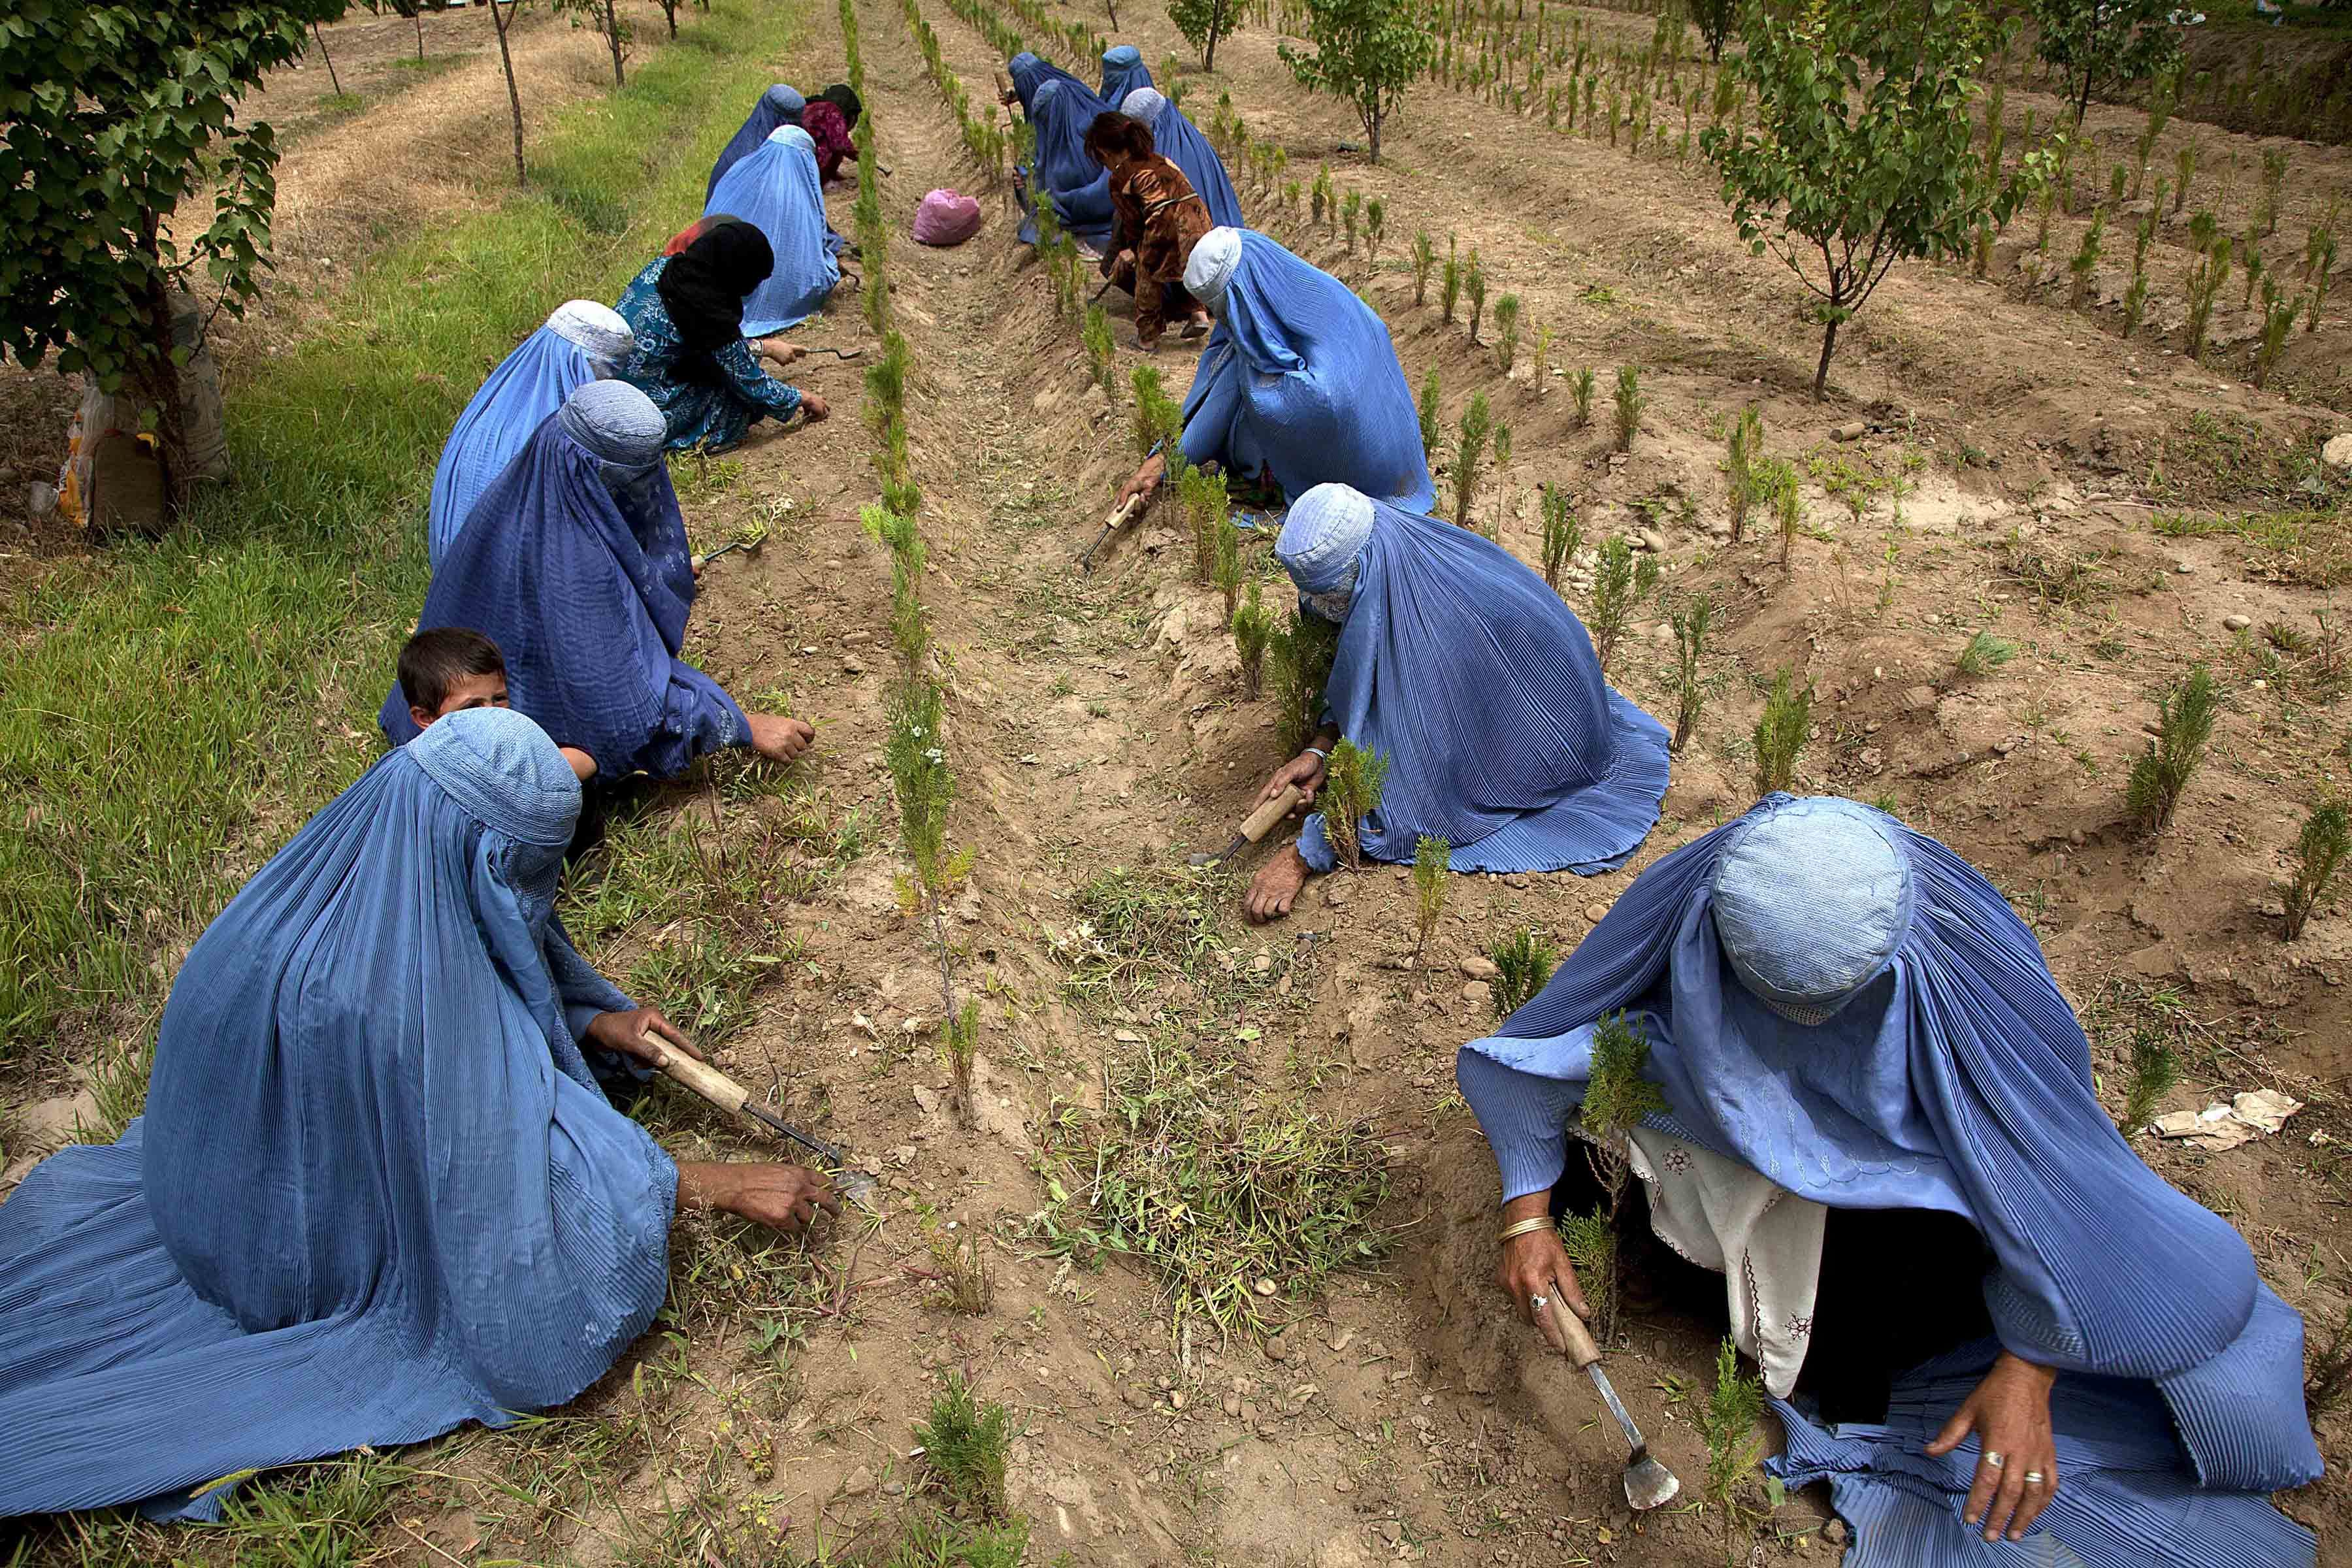 The United Nations, through its International Fund for Agricultural Development (IFAD), will provide a grant of US$58 million to Afghanistan for an initiative aimed at improving food security by enhancing the skills, services and income opportunities of rural women and men. The project seeks to improve agriculture and livestock productivity by building the capacity of community organizations and local government agencies to buoy locally-owned and led development.